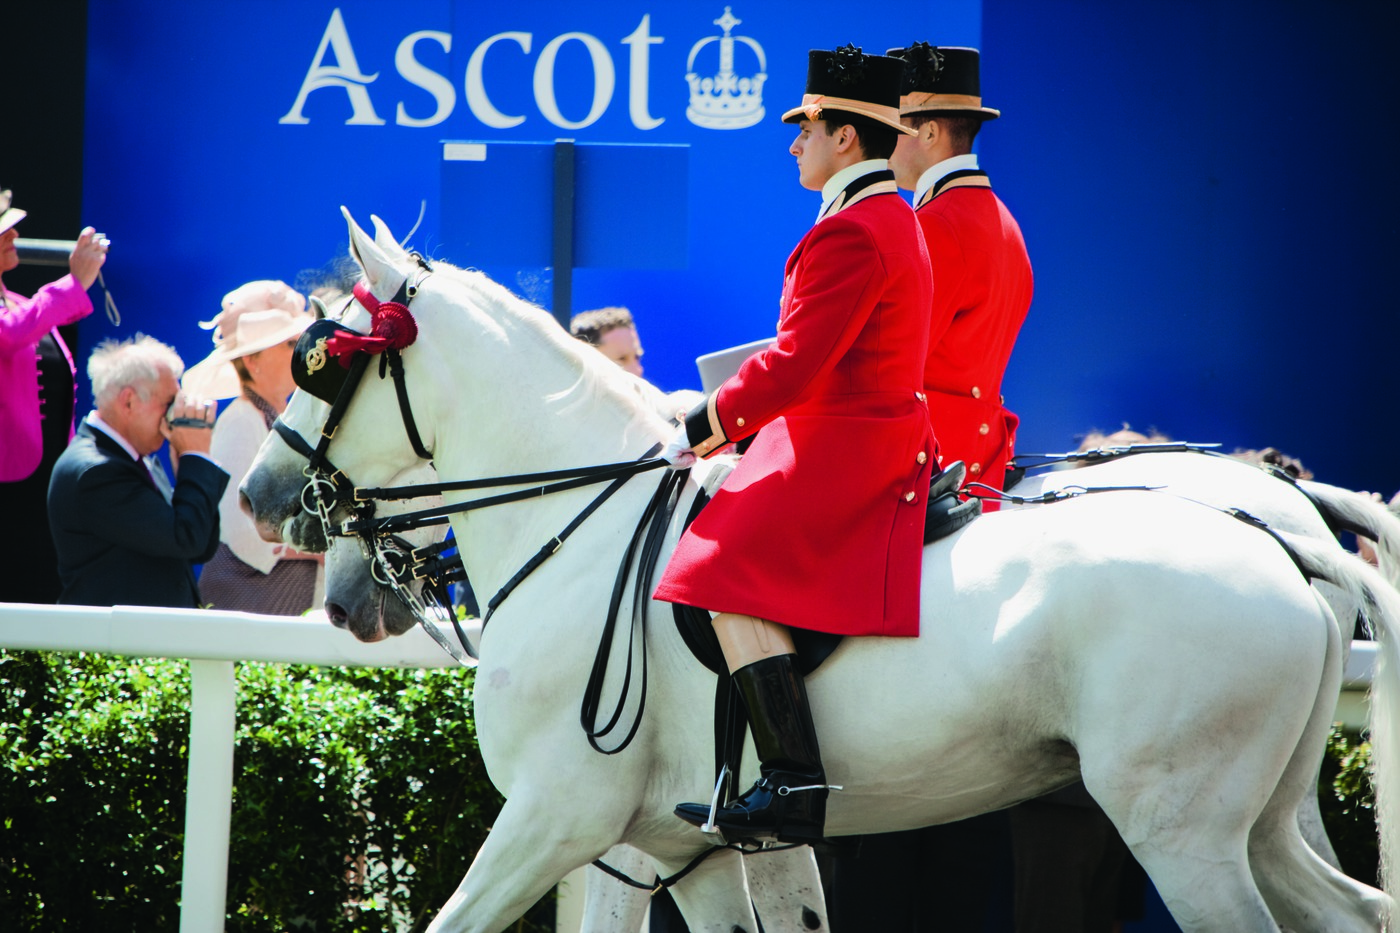 Longines Flat Racing Event: Longines once again Official Timekeeper at the prestigious Ascot Racecourse 4